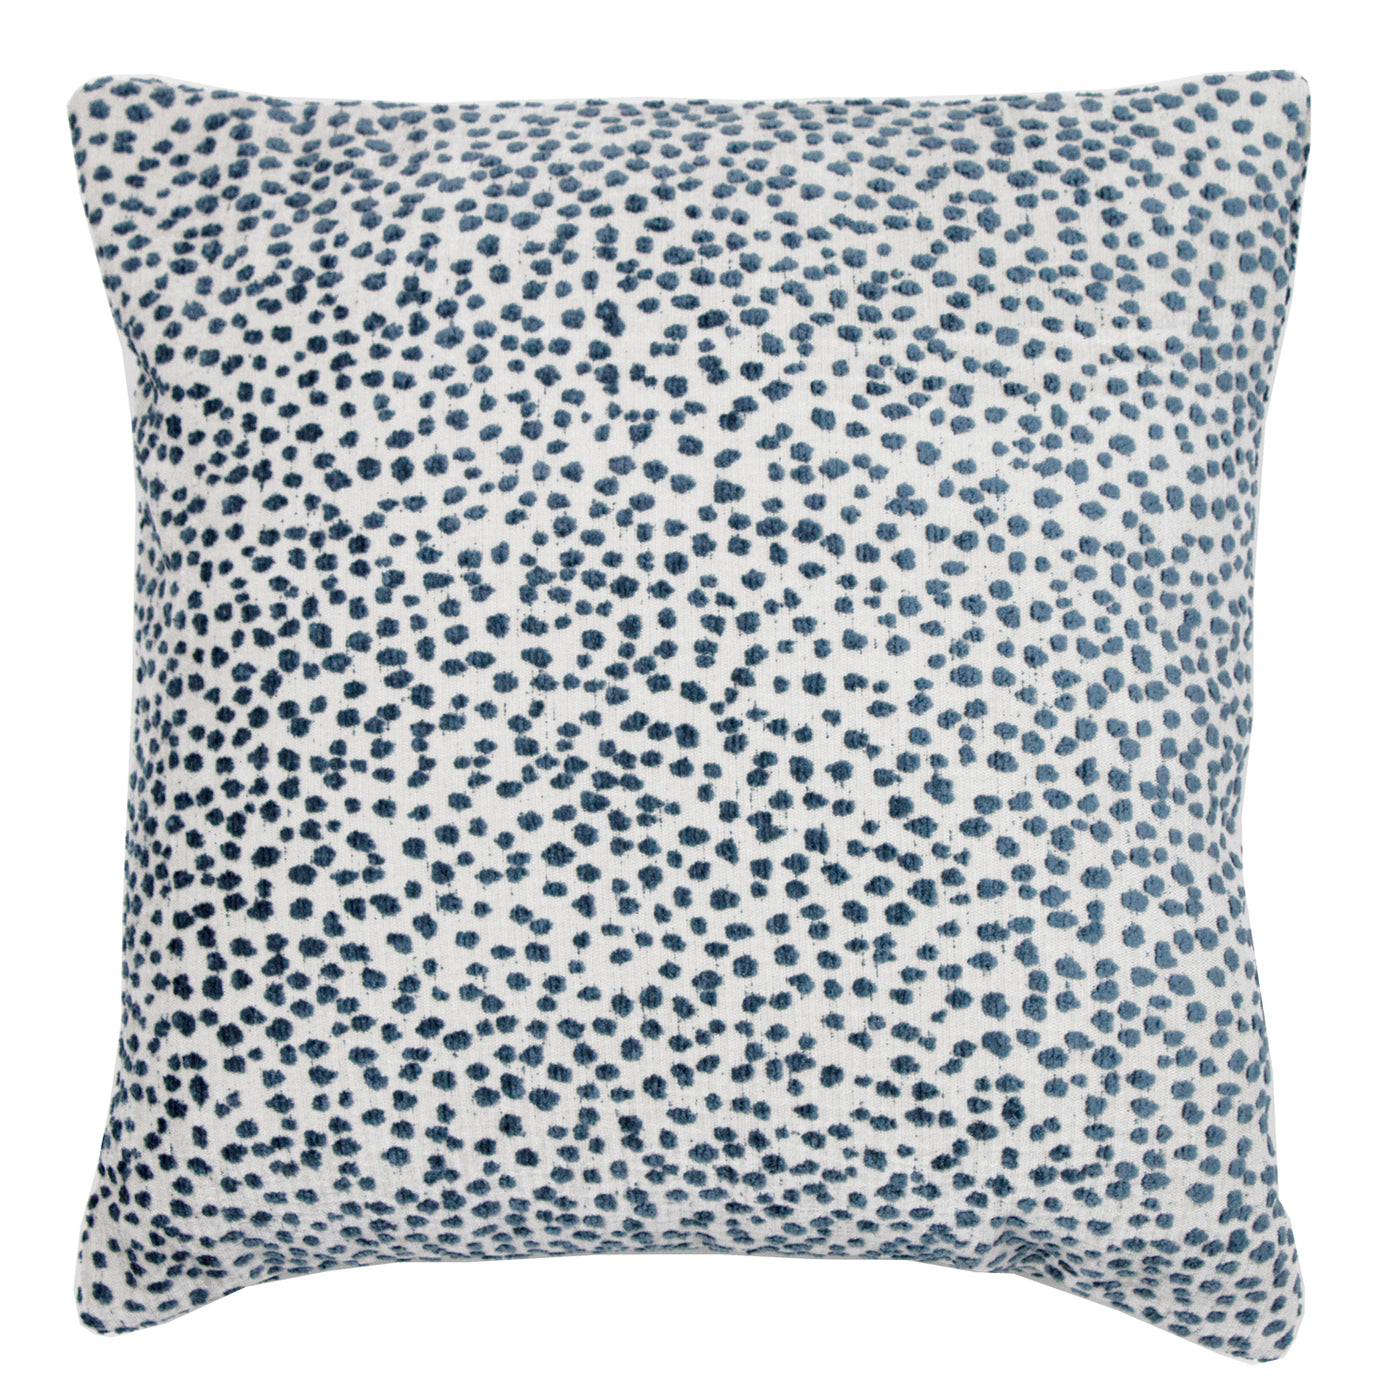 Lola Pillow - Azul